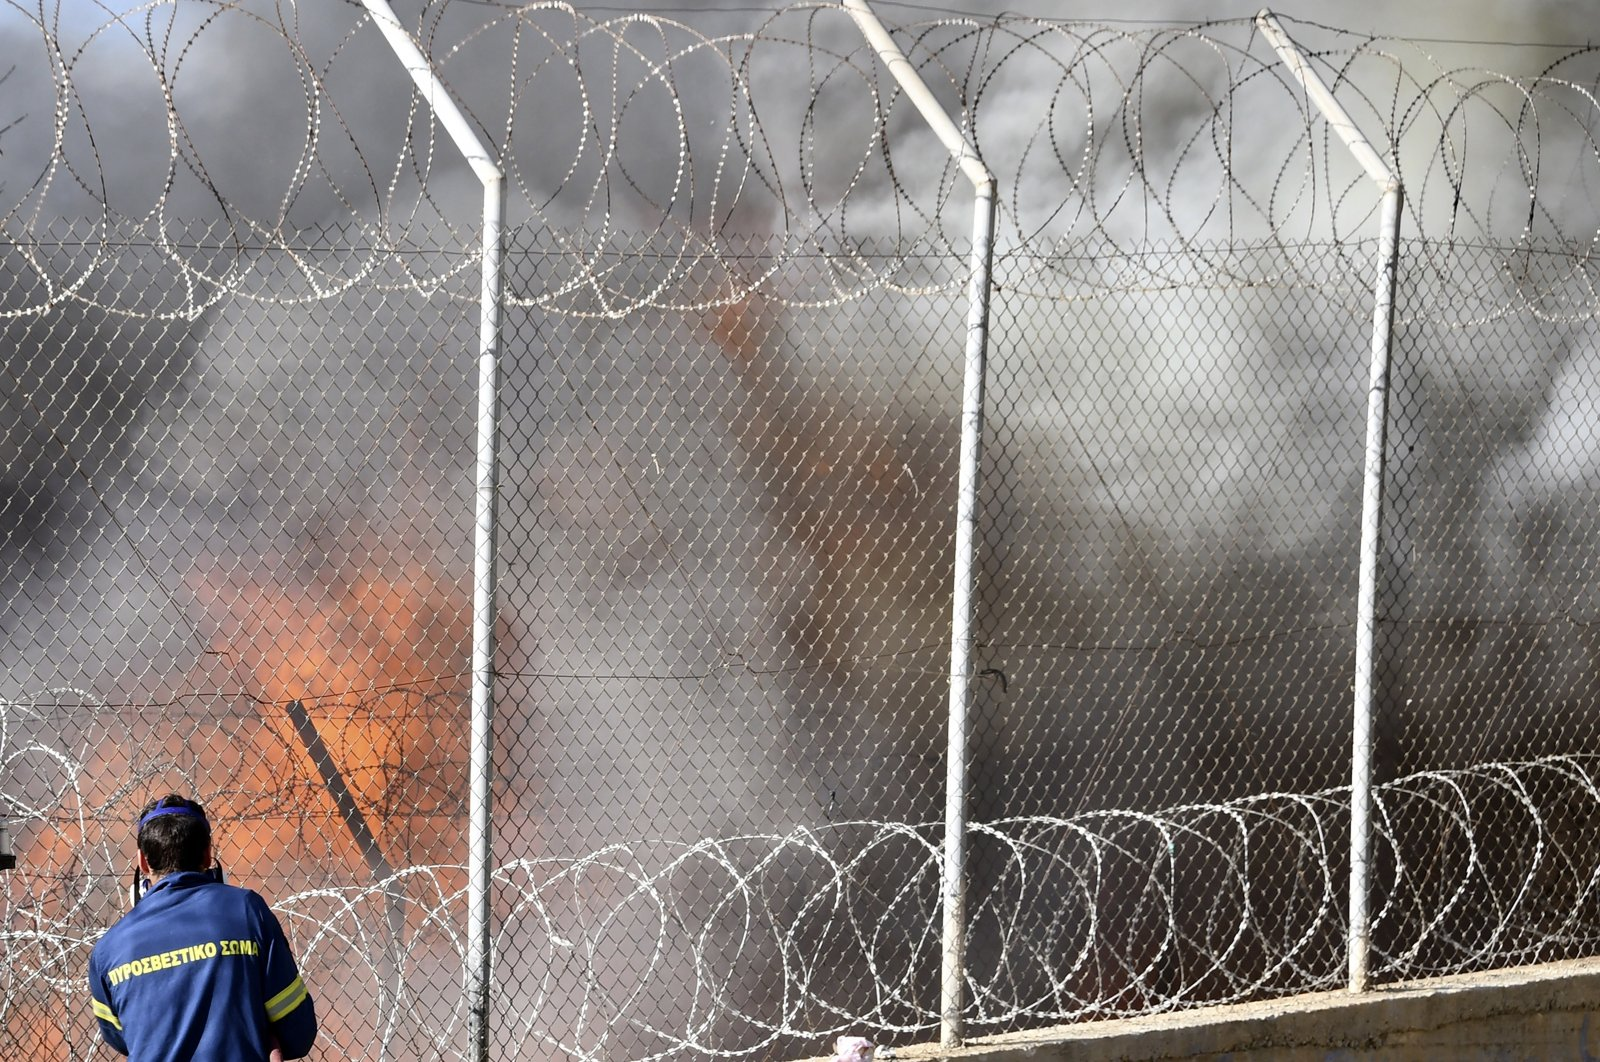 A firefighter tries to extinguish a fire inside a refugee camp on the eastern Aegean island of Samos, Greece, Nov. 11, 2020. (AP Photo)